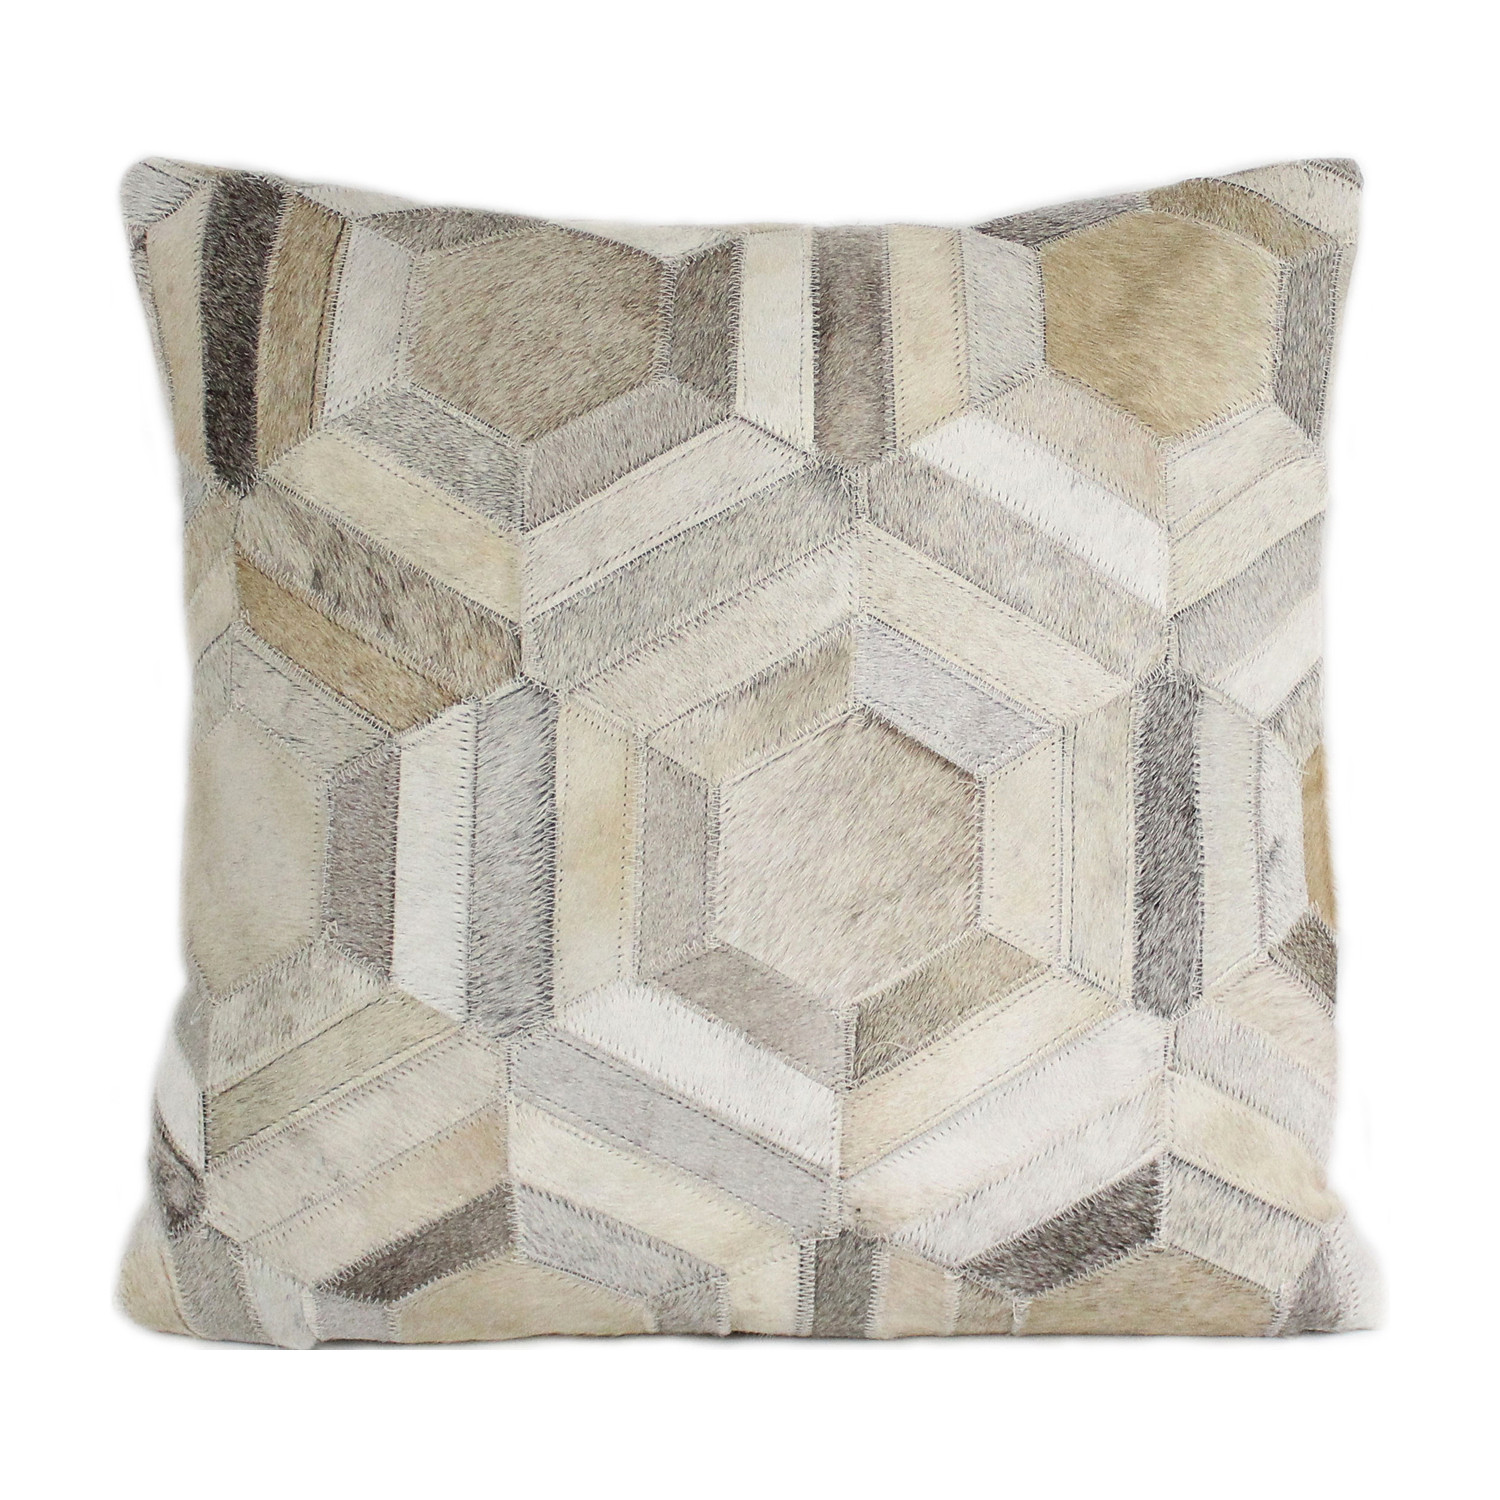 Parquet // Grey // Cowhide Pillow - Bashian - Touch of Modern